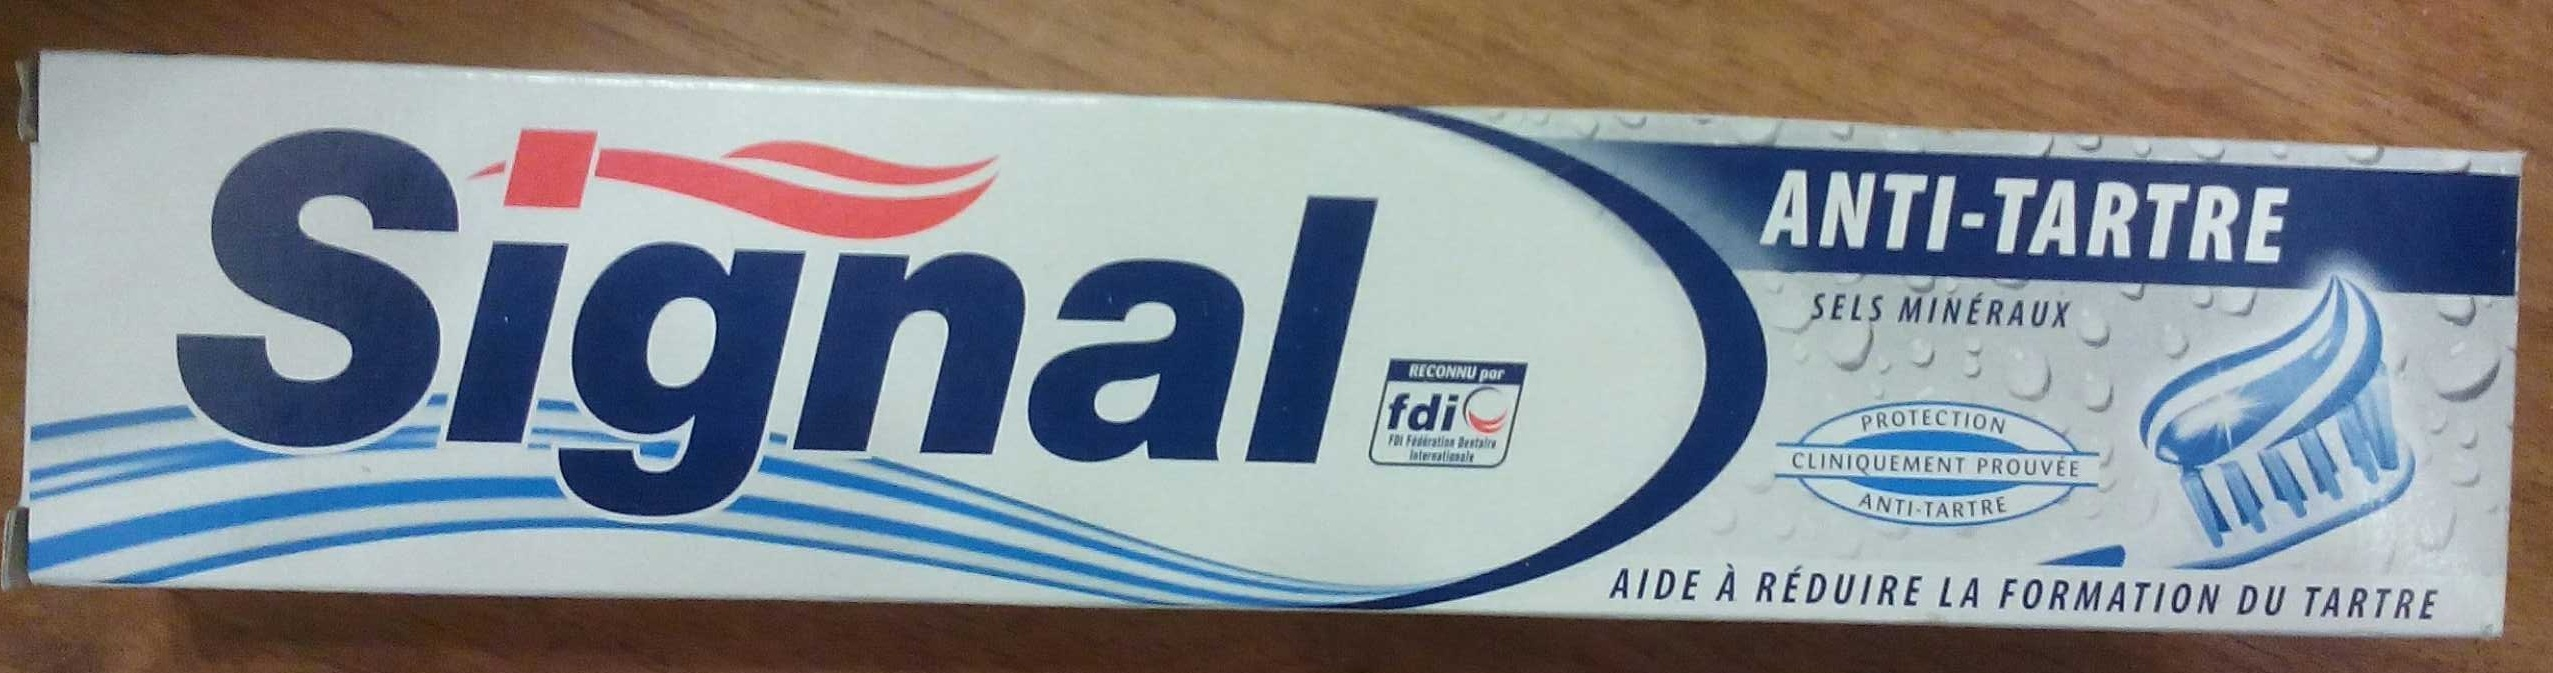 Signal Dentifrice Anti Tartre - Product - fr